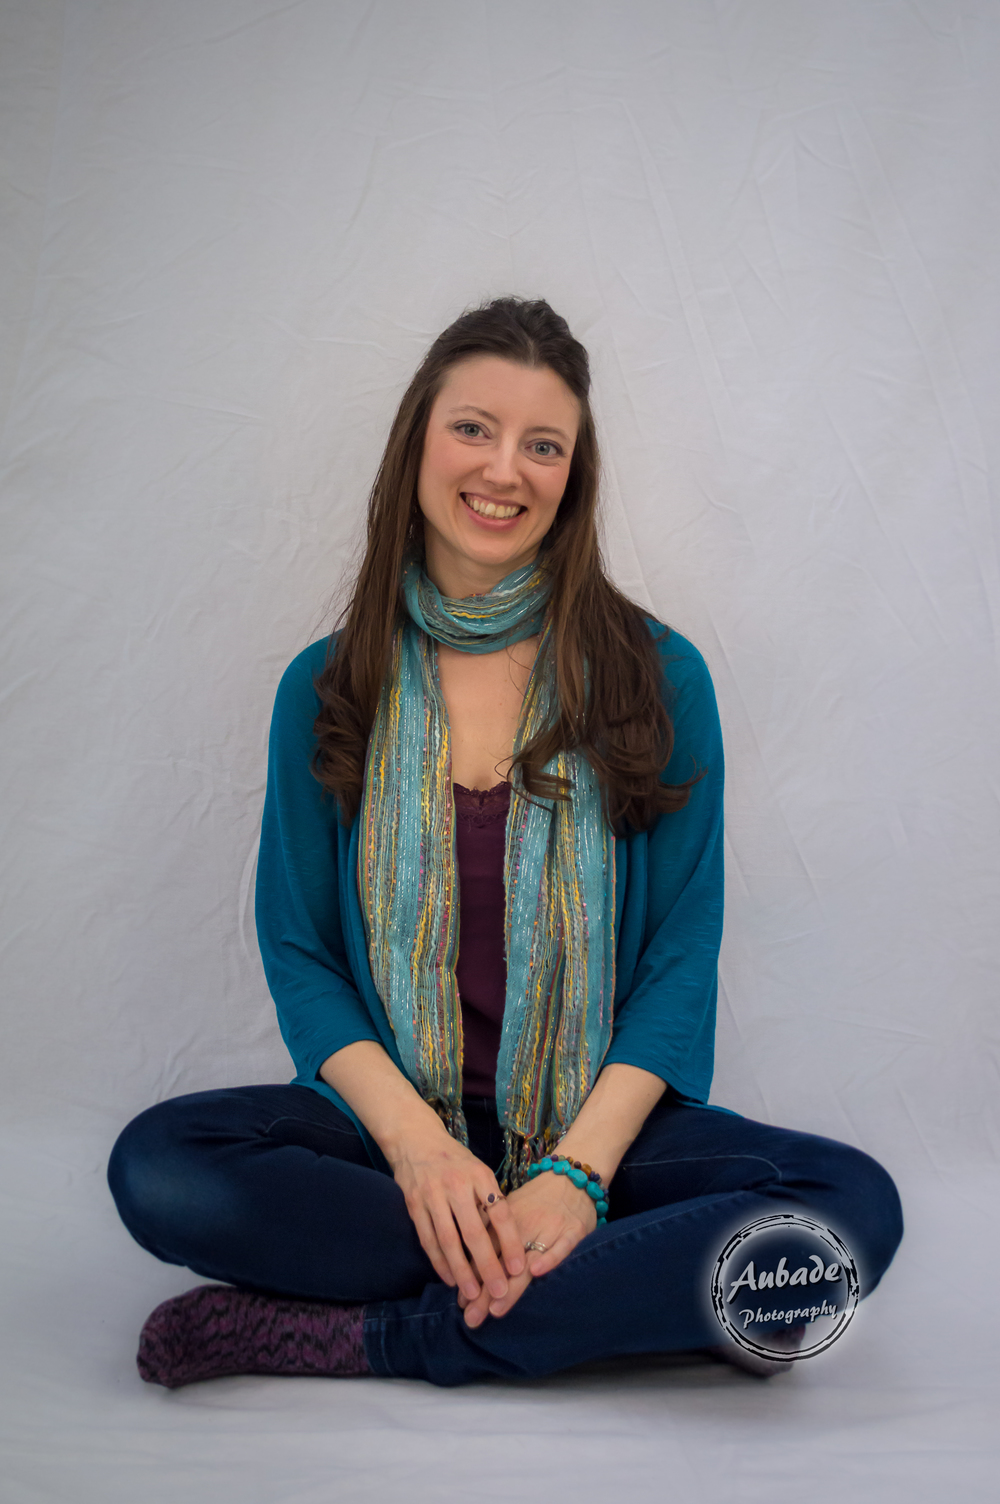 #Aubade Photography #Community 52 #Kristin Schrader #Happily Holistic #Reiki #Lactation Counselsor